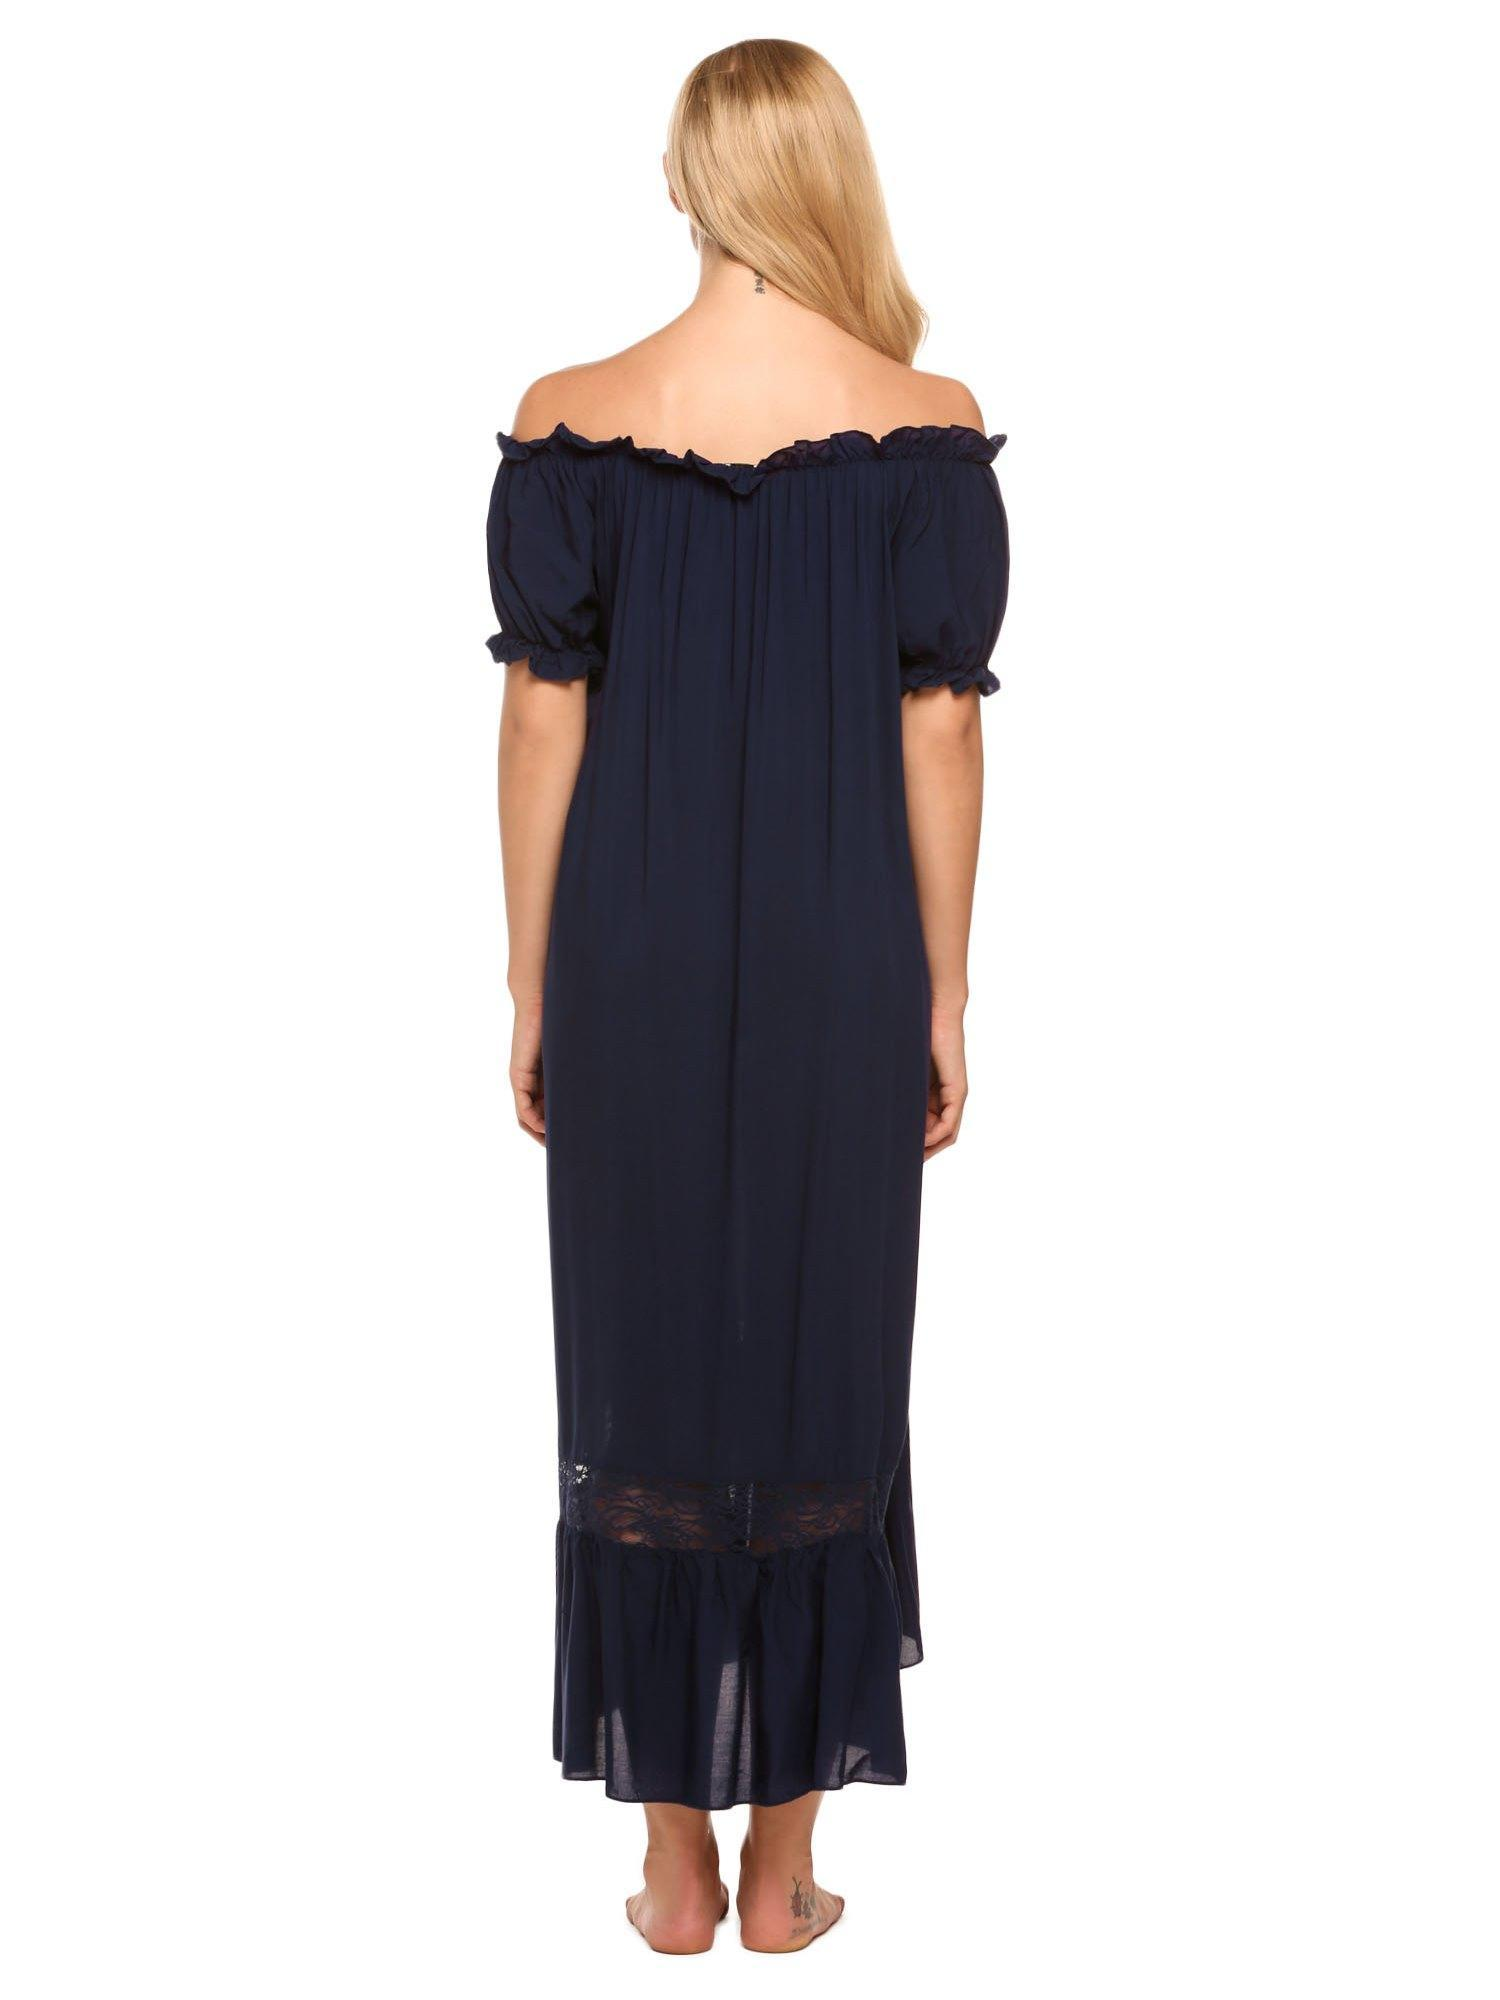 29a9788f6e43d Ekouaer - Ekouaer Women Comfy Ruffled Nightgown Lounge Sleepwear Long Maxi  Dress Off Shoulder Short Sleeve ANGHE - Walmart.com